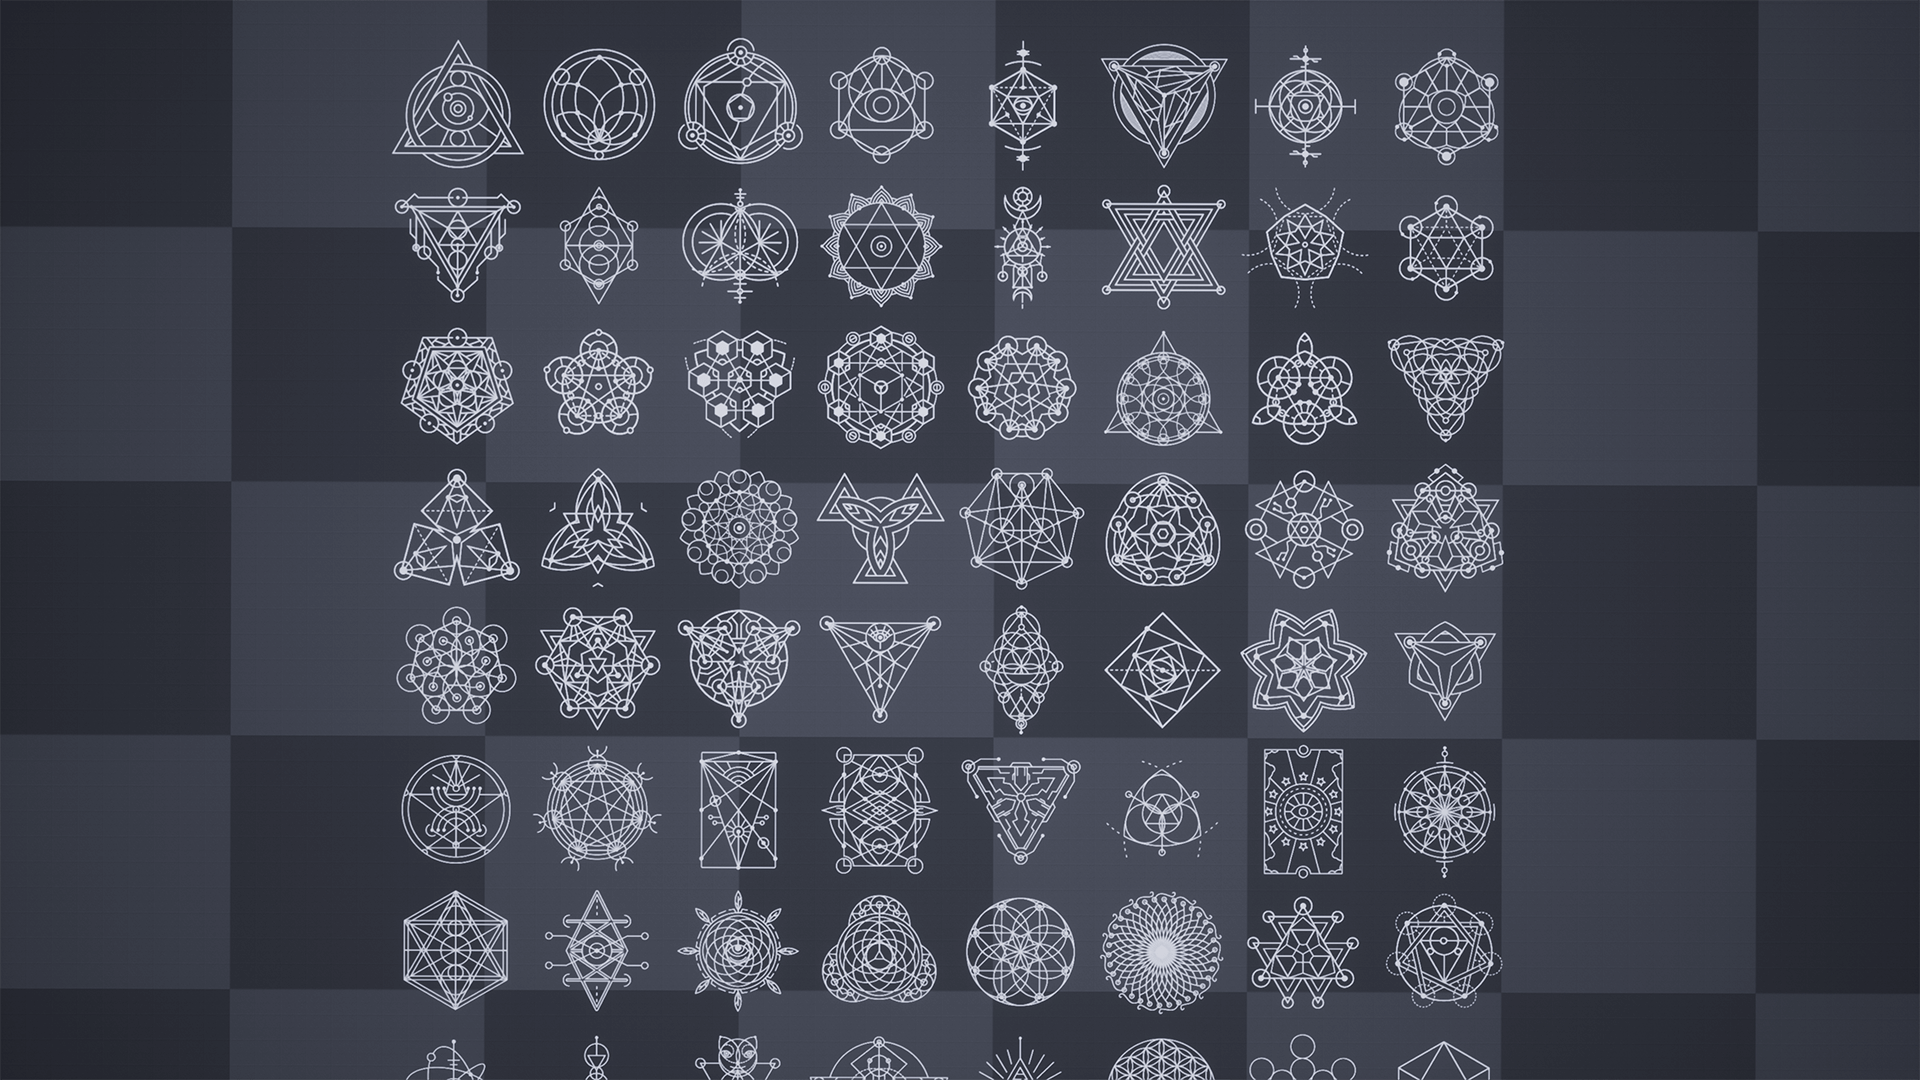 hg sacred geometry decals vol 1 hotgates テクスチャー ue4